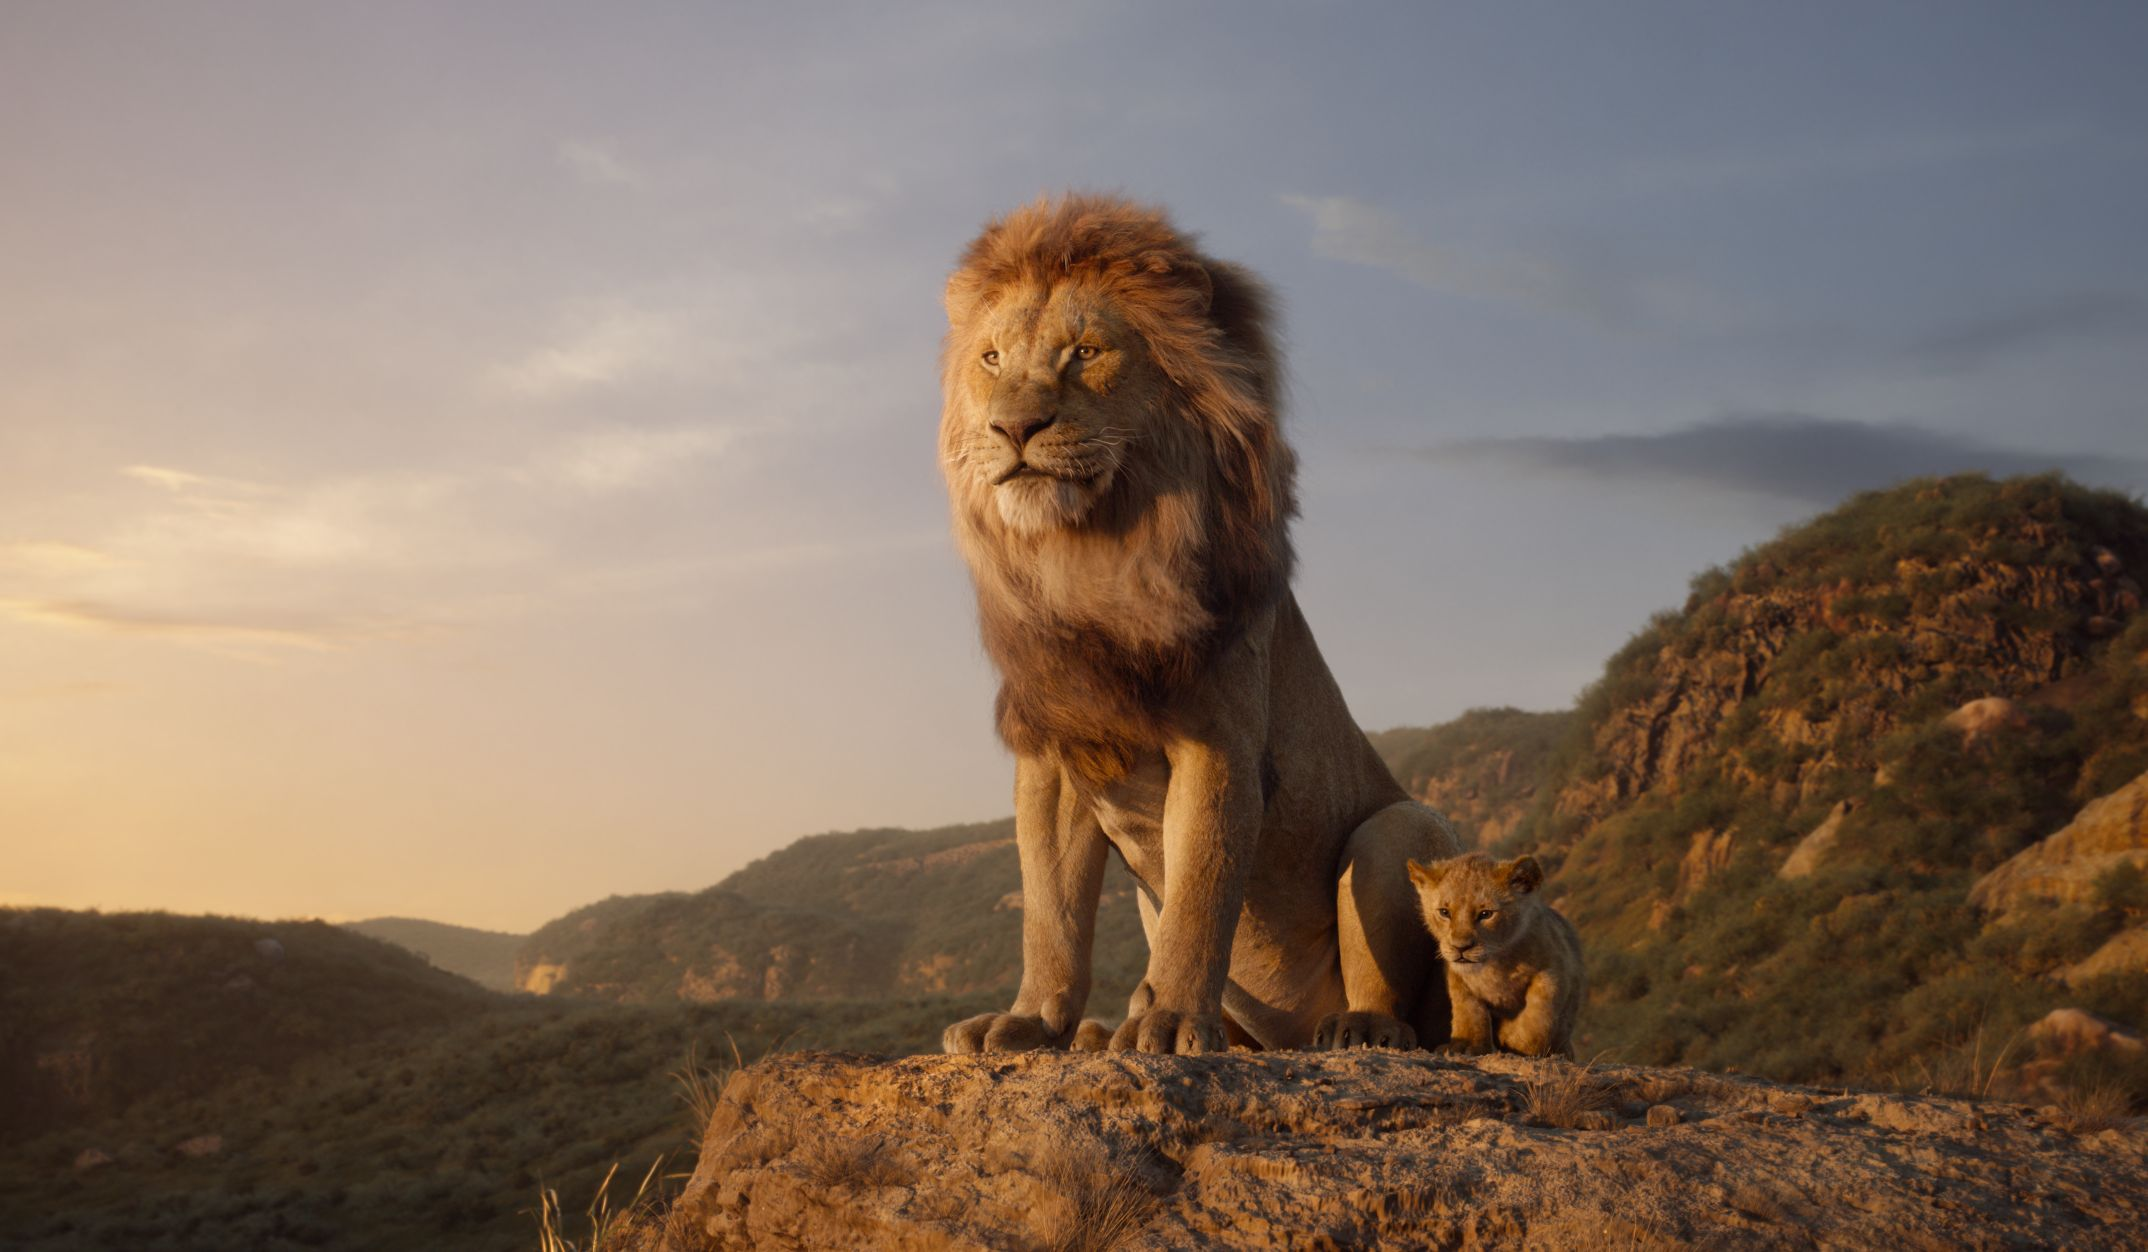 The Epic 'Lion King' Trailer Includes The Debut Of Timon And Pumbaa